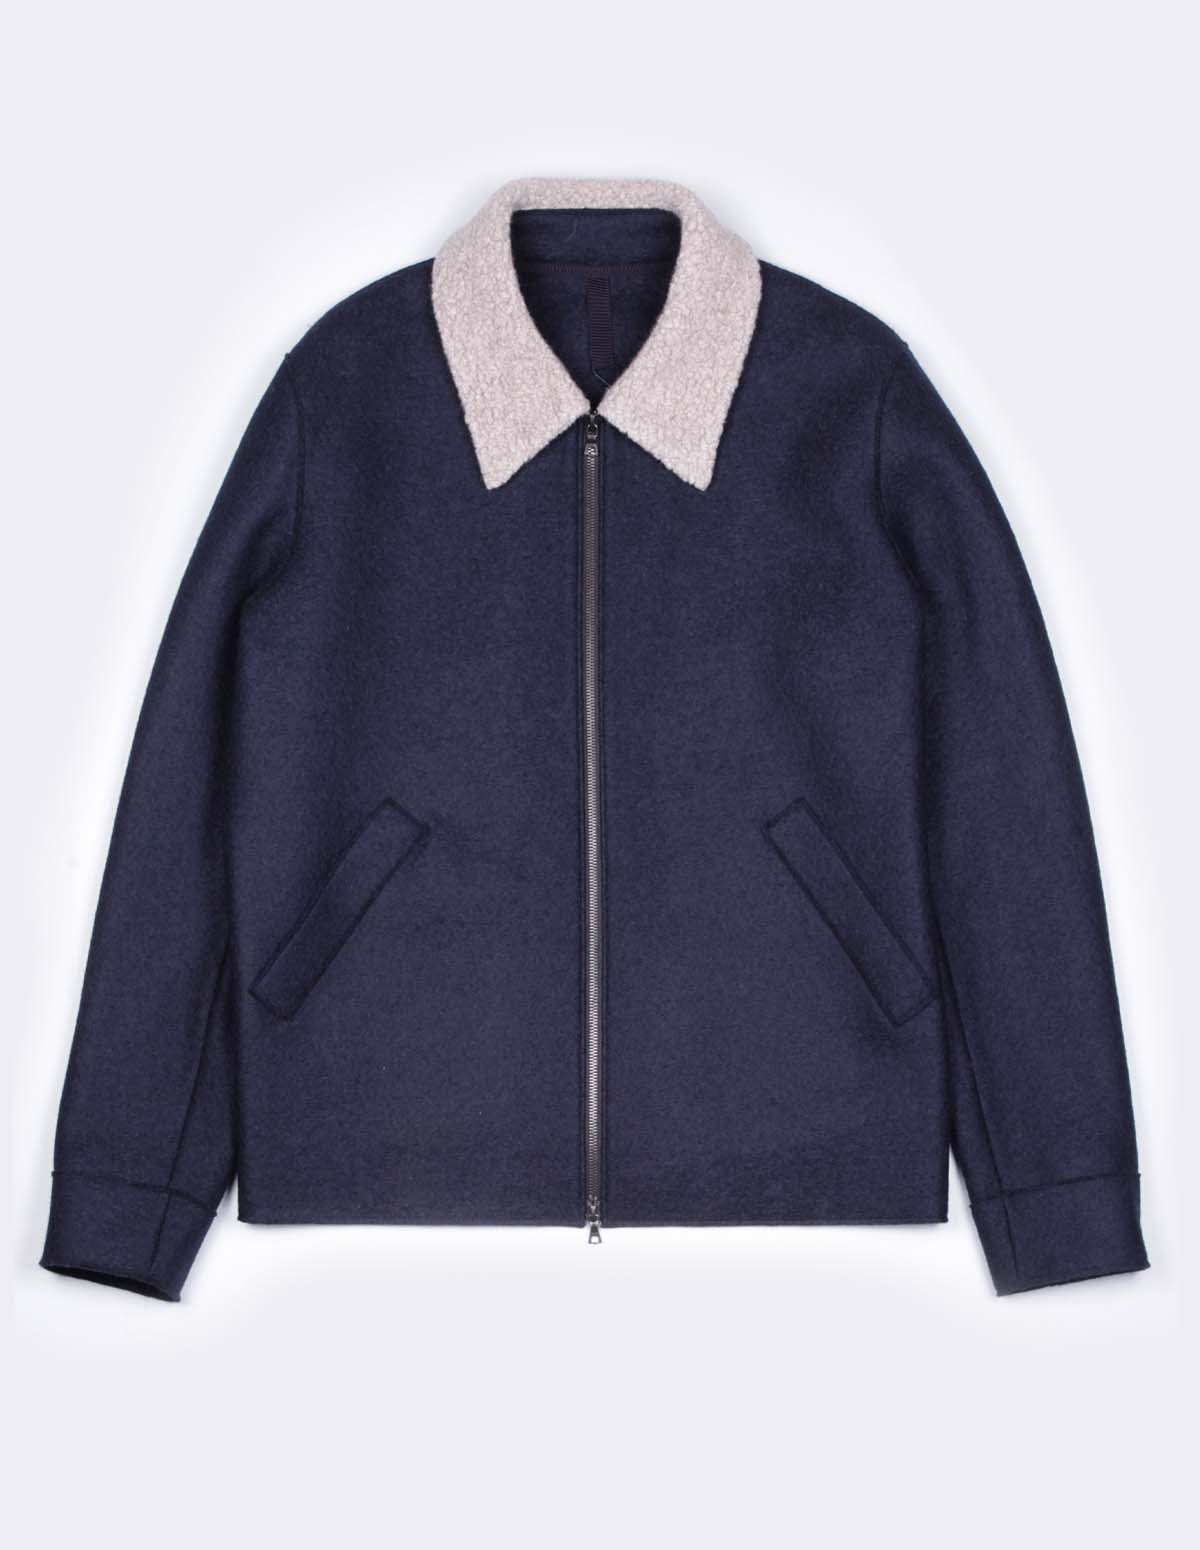 Hwl Golf Jacket Pressed Exclu - DARK BLUE